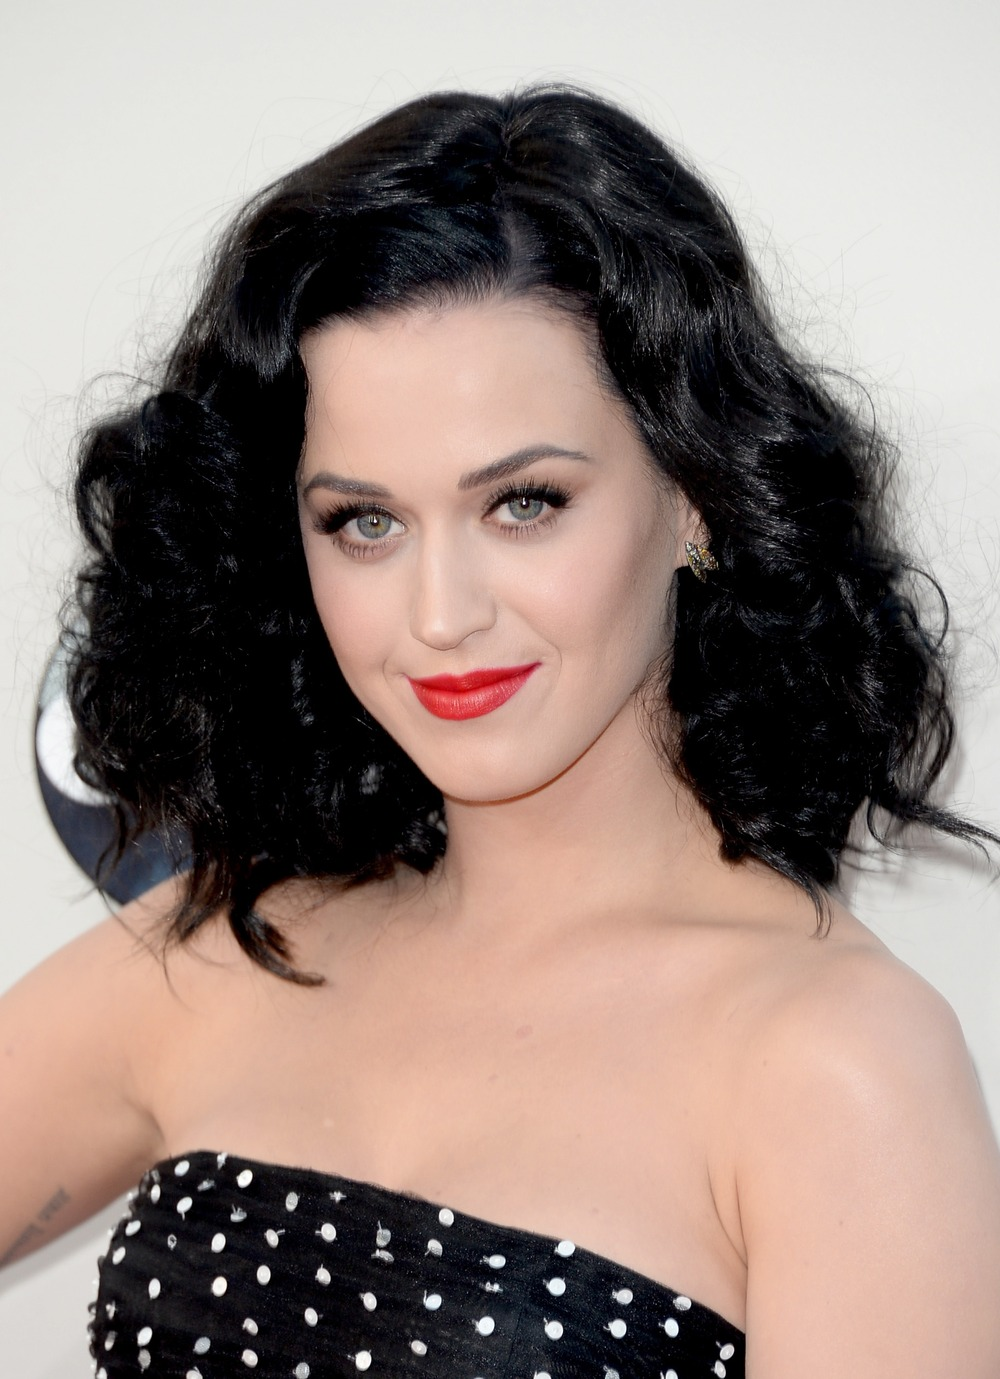 Katy Perry Starts Her Own Record Label — And Announces Her First Artist (VIDEO)